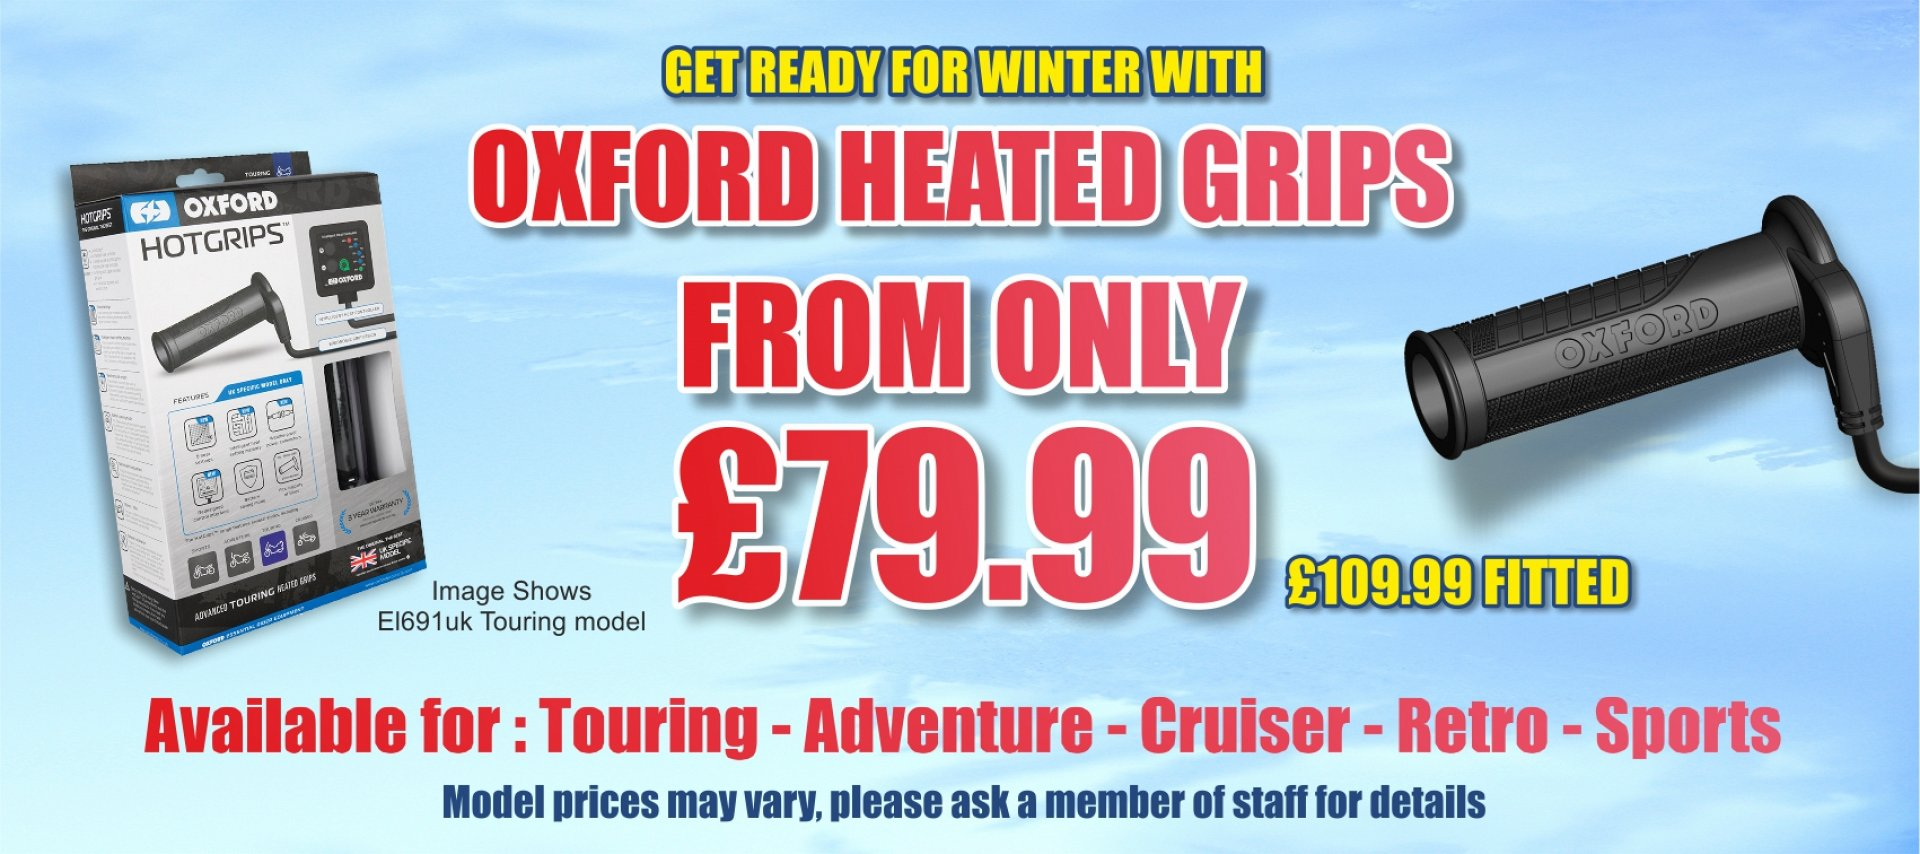 Keep your fingers warm - Get a set of Oxford Heated Grips and fitting for only £109.99